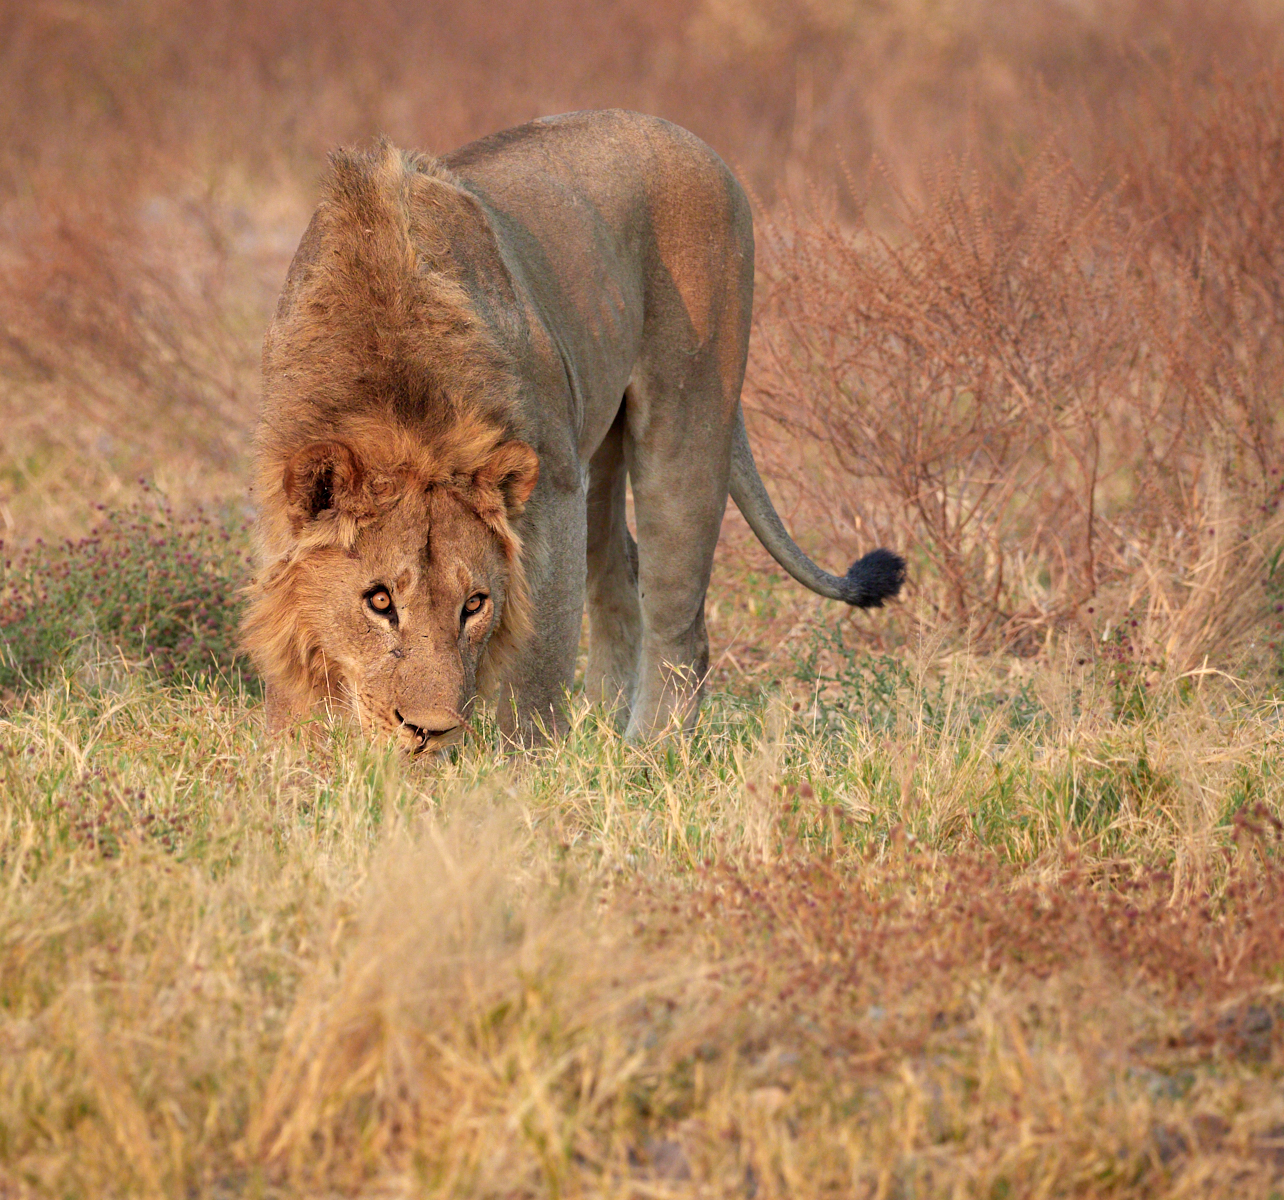 Male lion searching for his pride 2 1600x1200 sRGB.jpg